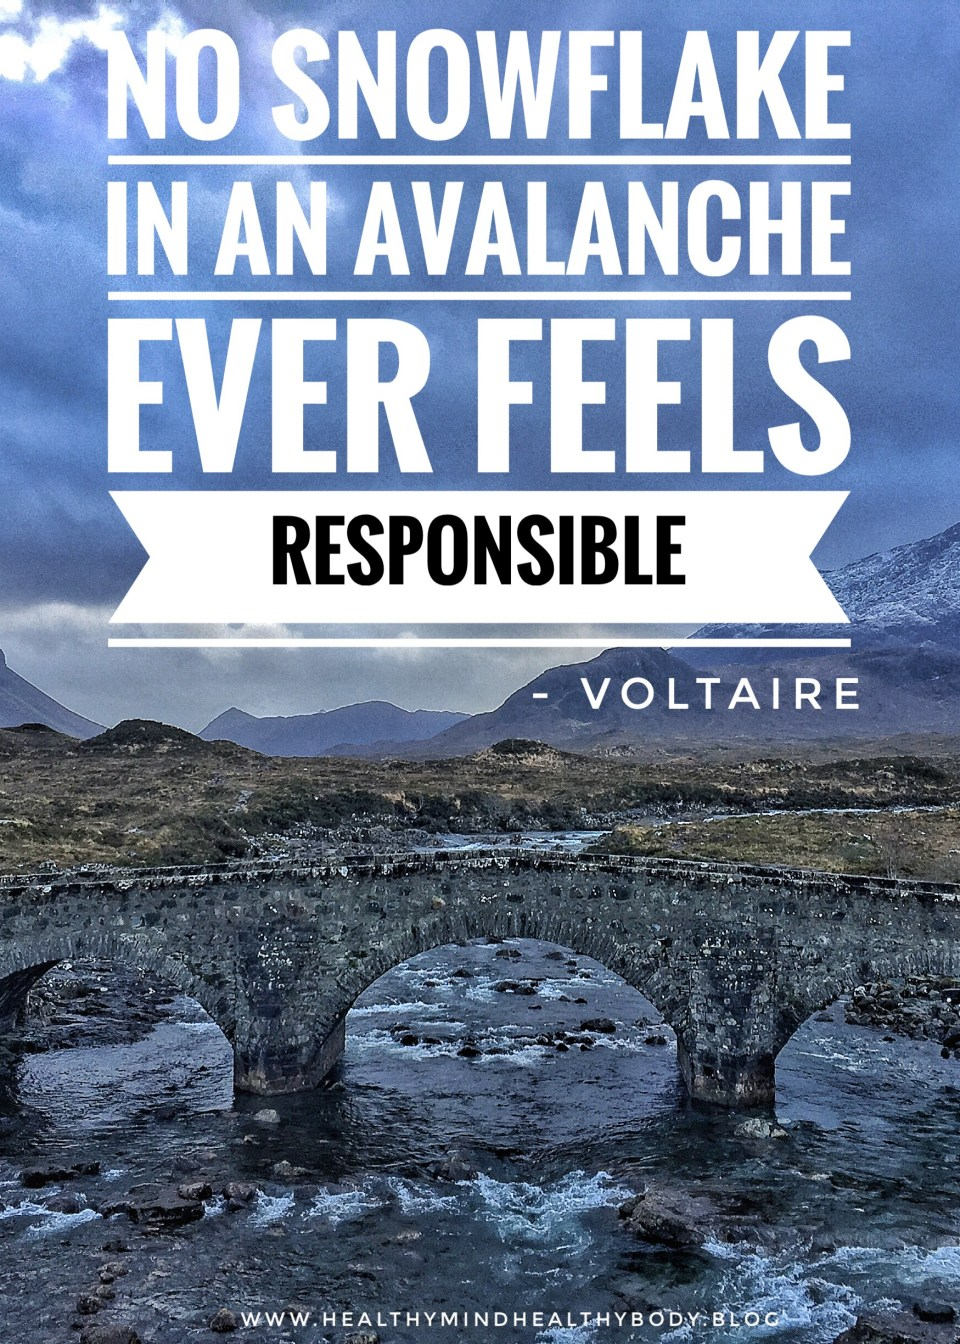 Take responsibility for your own life, we can be the change and have real impact in the world if we choose to. Be the snowflake that causes the avalanche